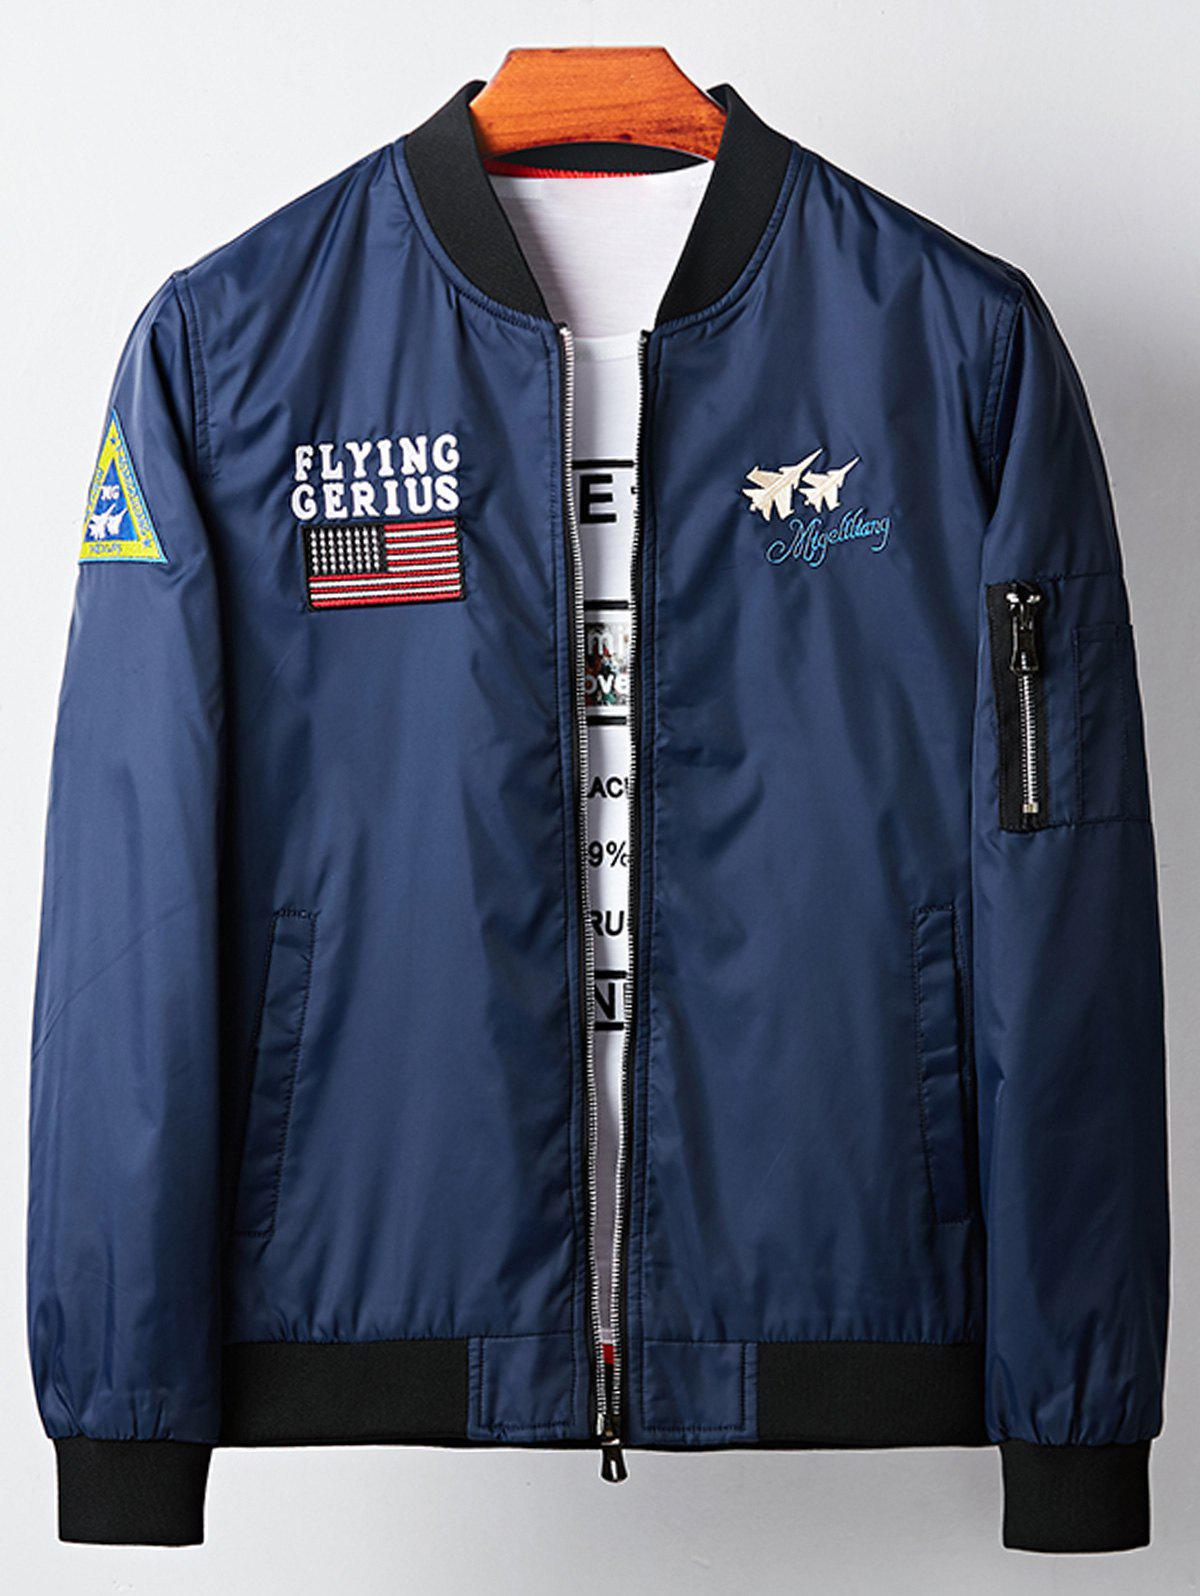 Trendy Applique Aircraft Graphic Embroidered Bomber Jacket